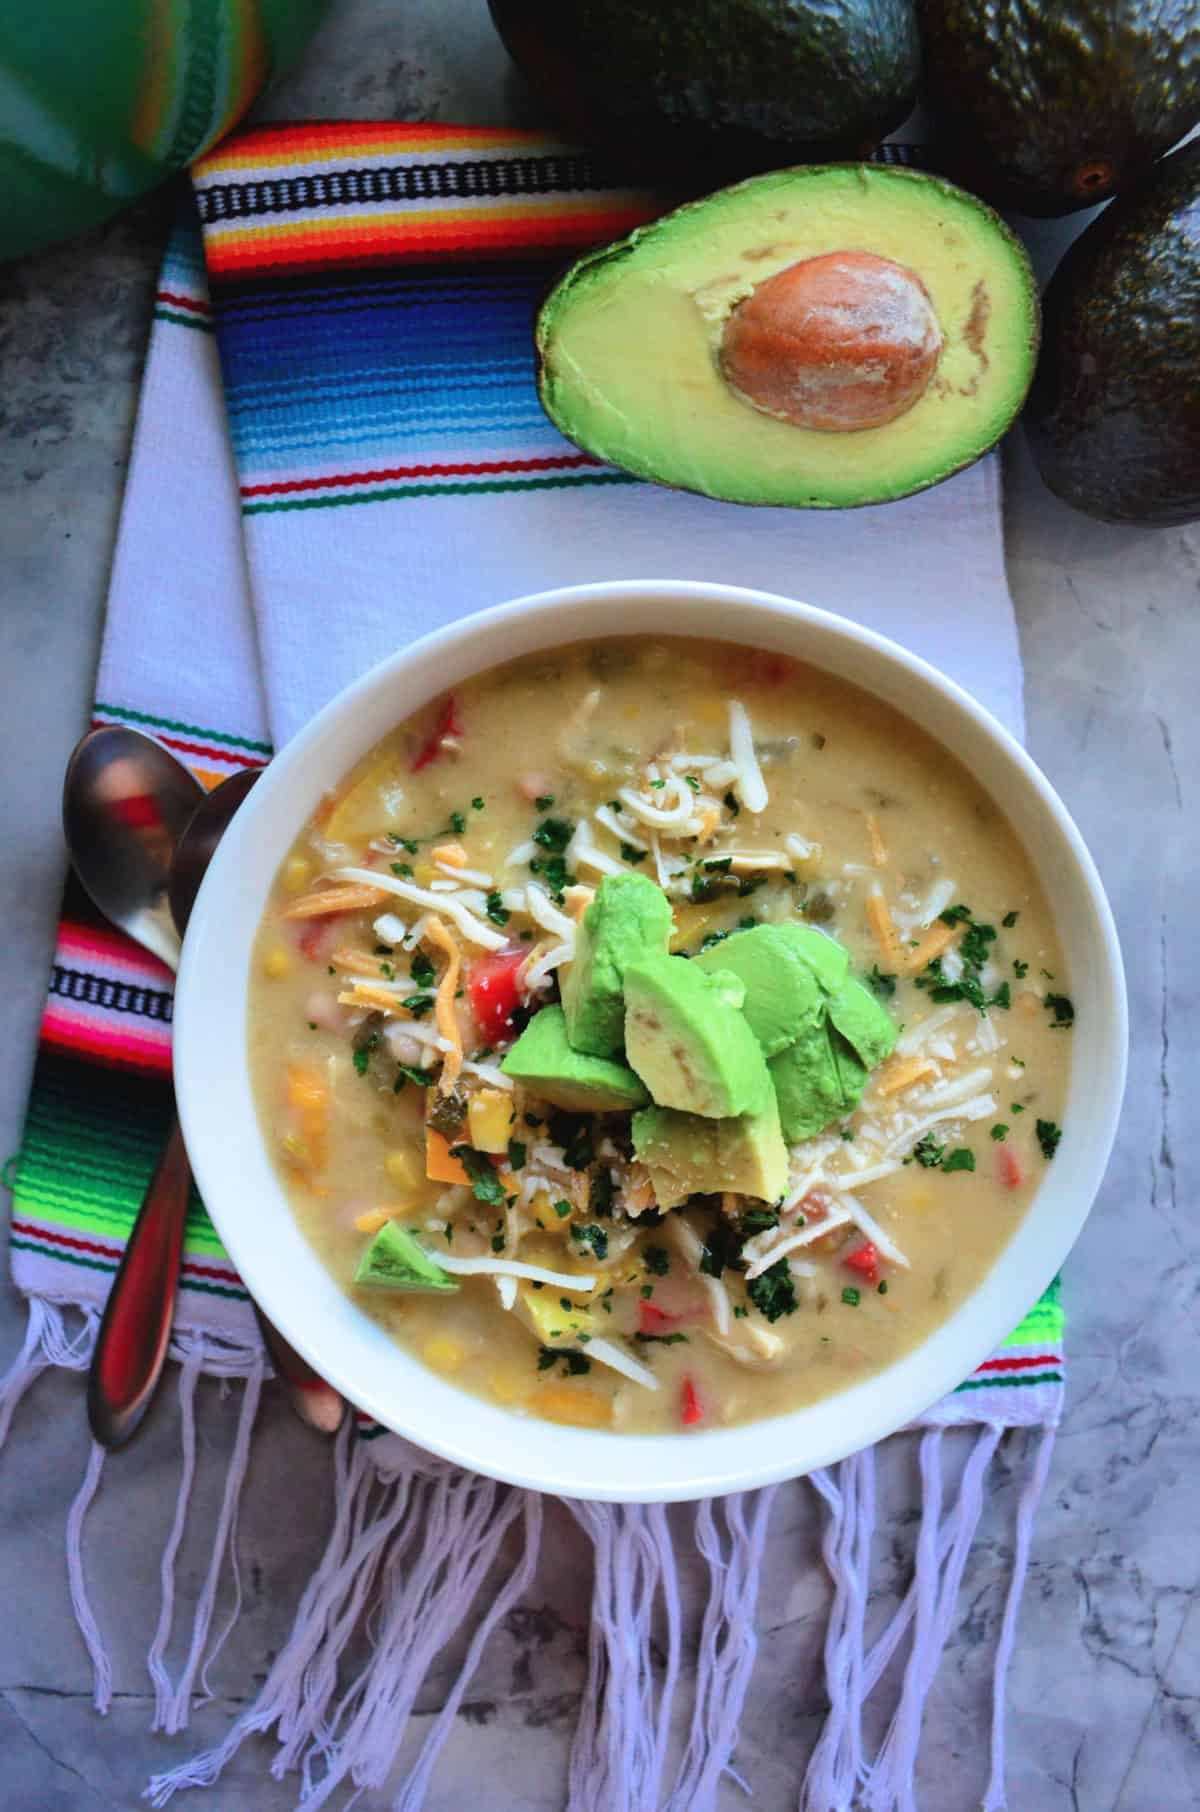 Green Enchilada Chicken Soup in bowl topped with cheese and avocado next to halve avocado.